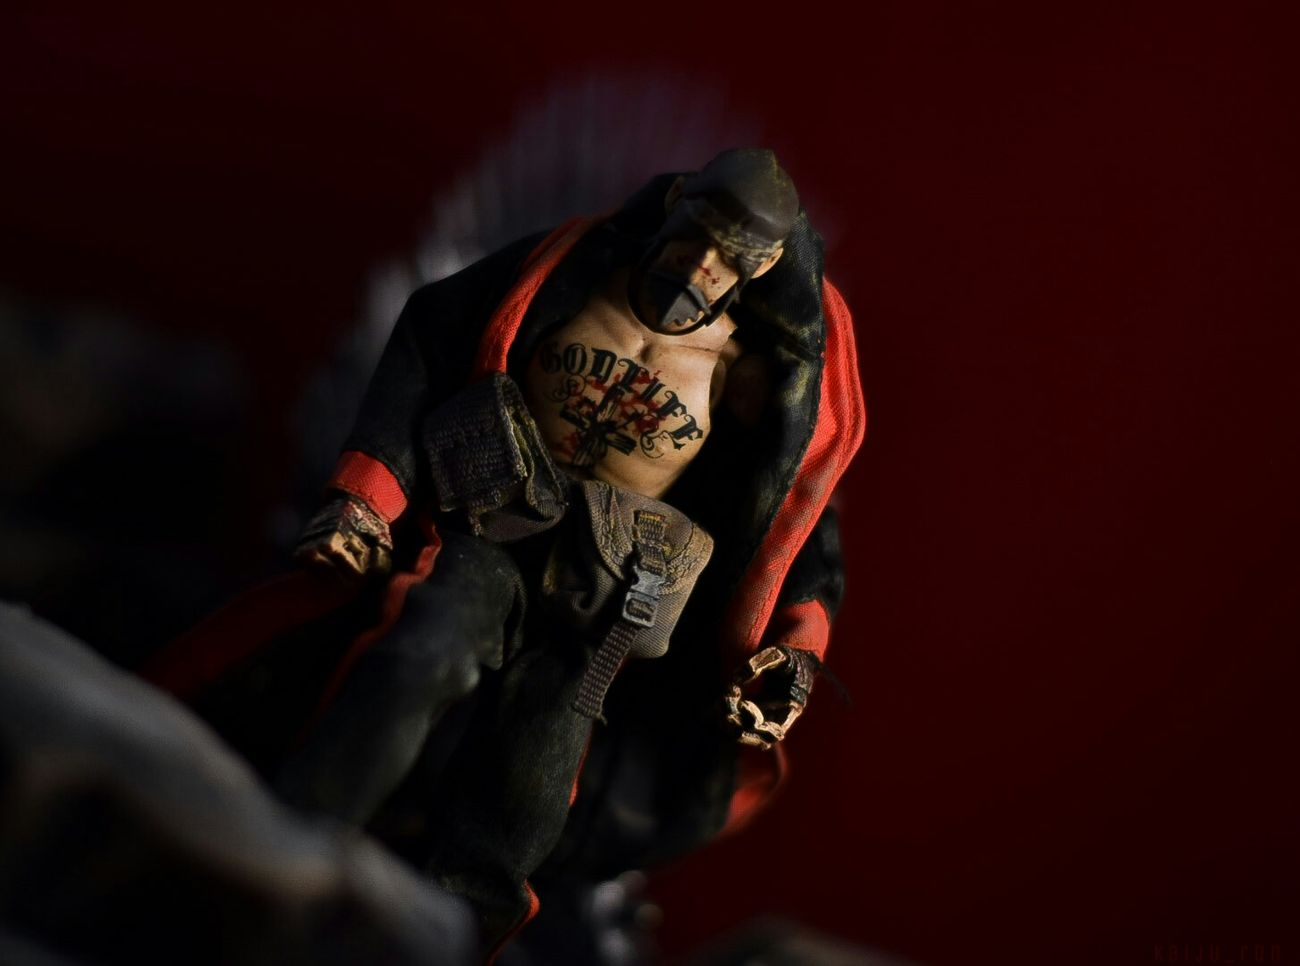 A person's true character is always tested during times of crisis Anarchyalliance Ata_dreadnoughts EyeEm Best Shots ThreeA Adventurekartel FightingJC